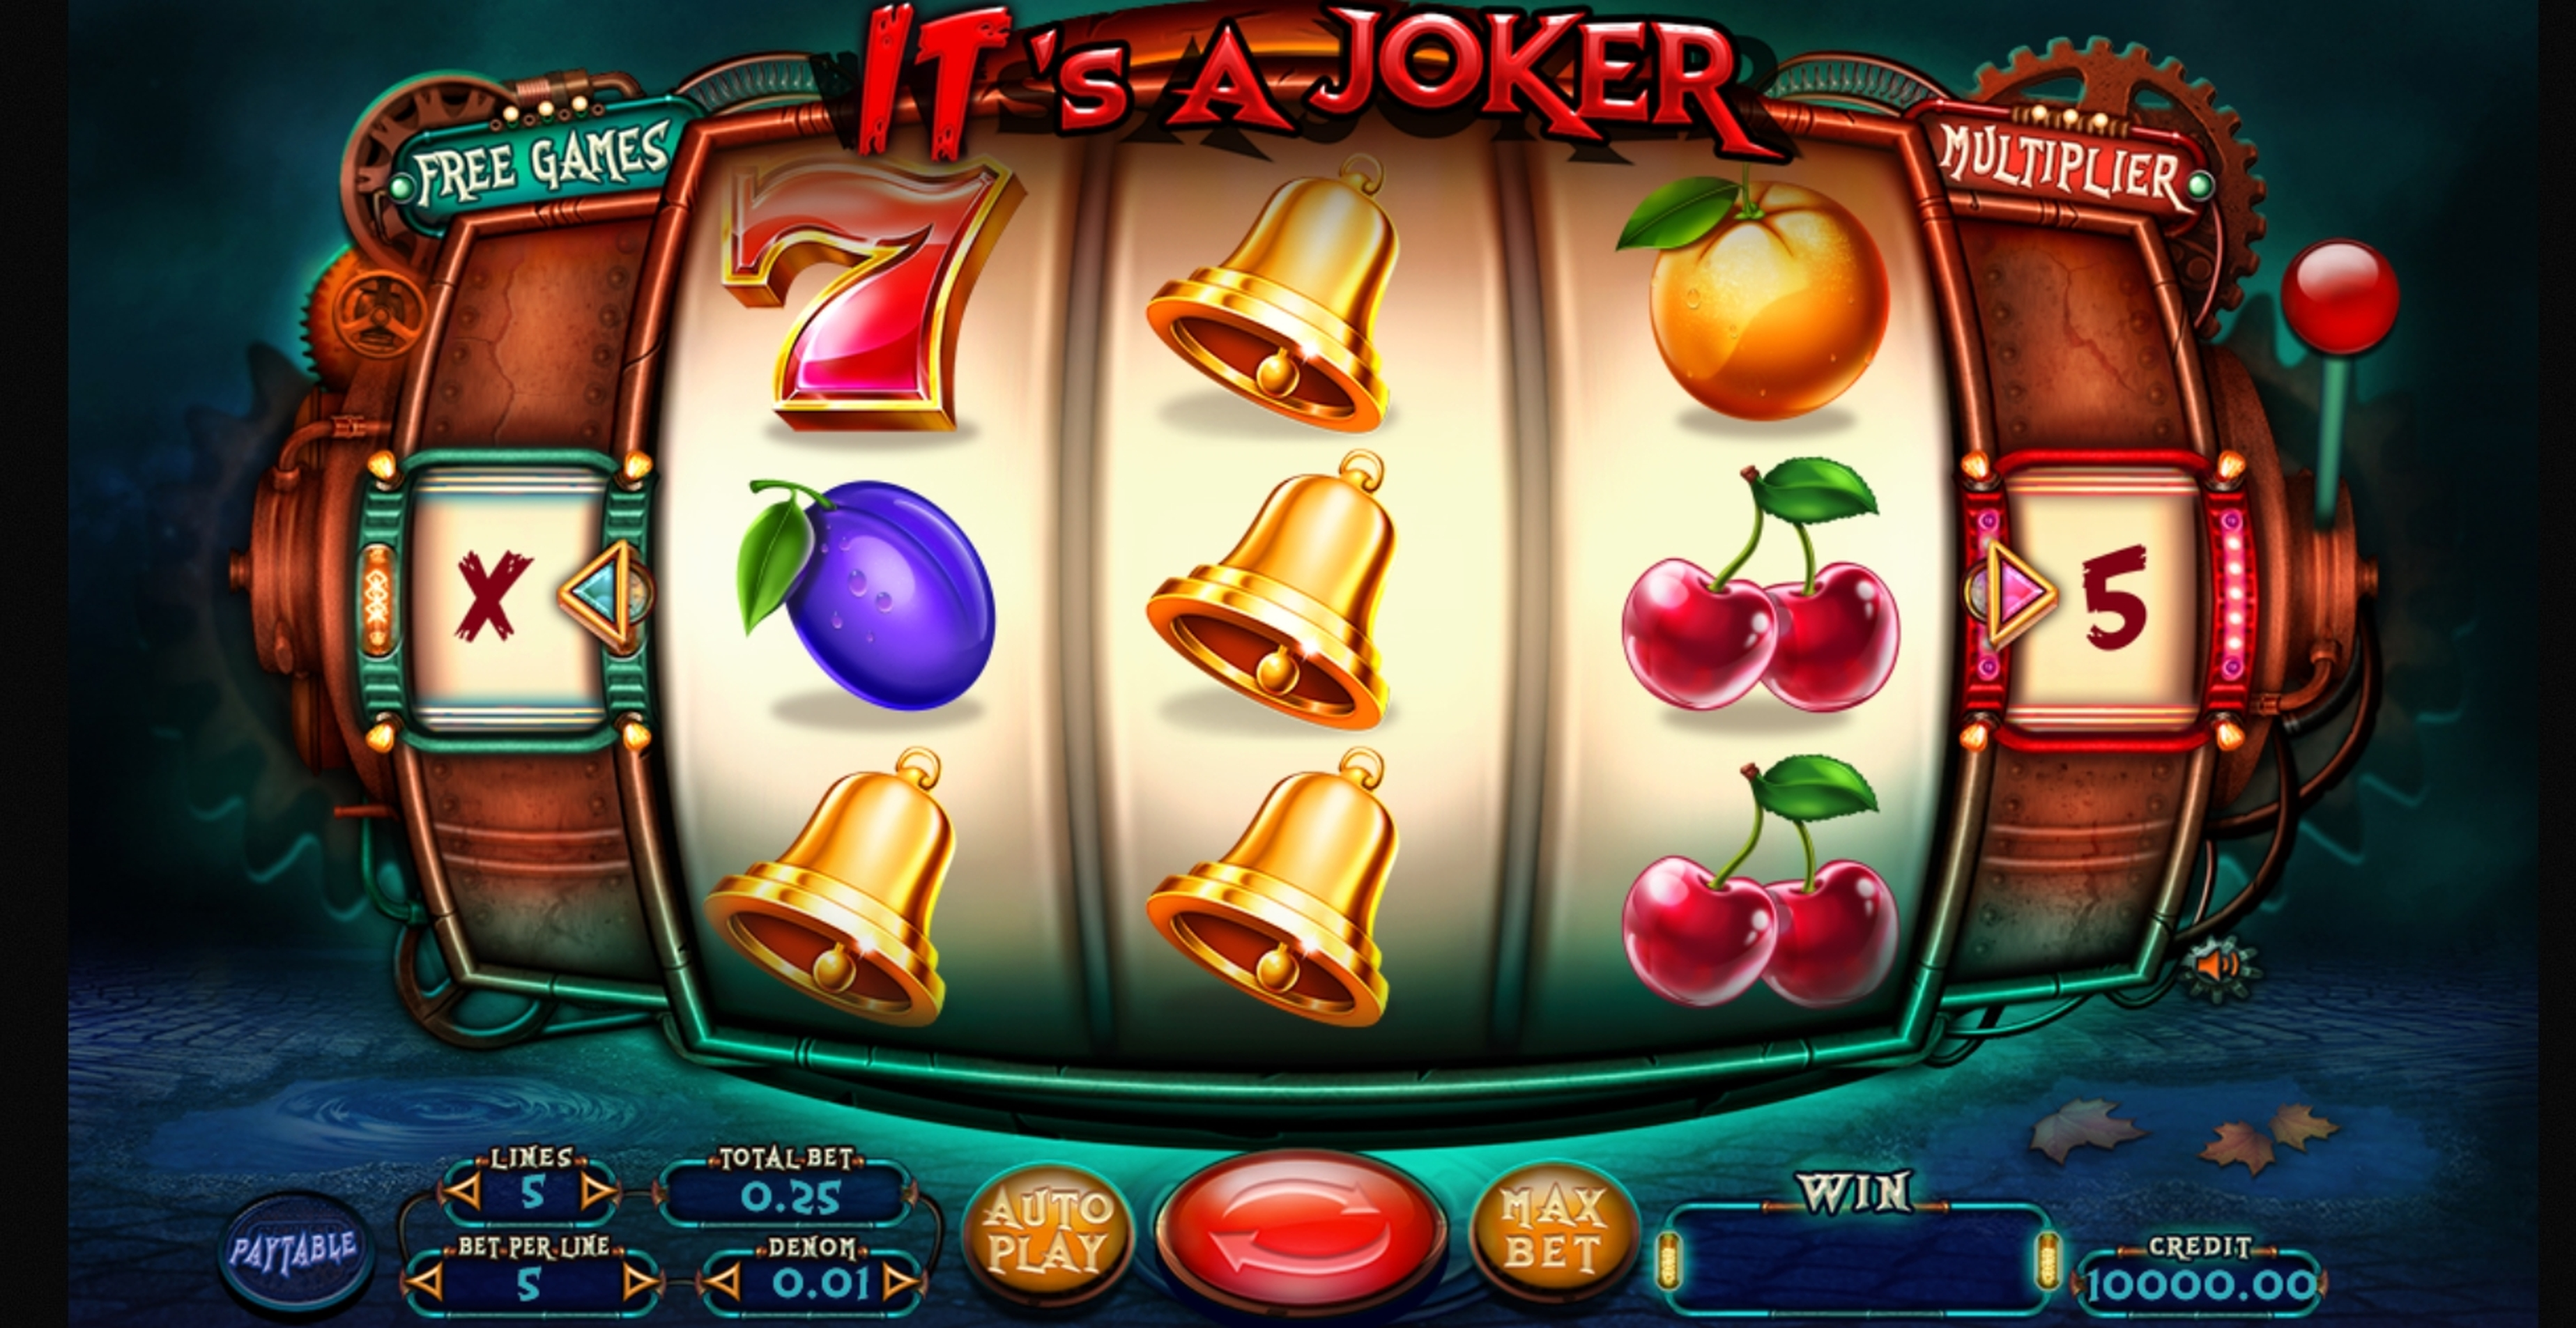 Reels in Its a Joker Slot Game by Felix Gaming